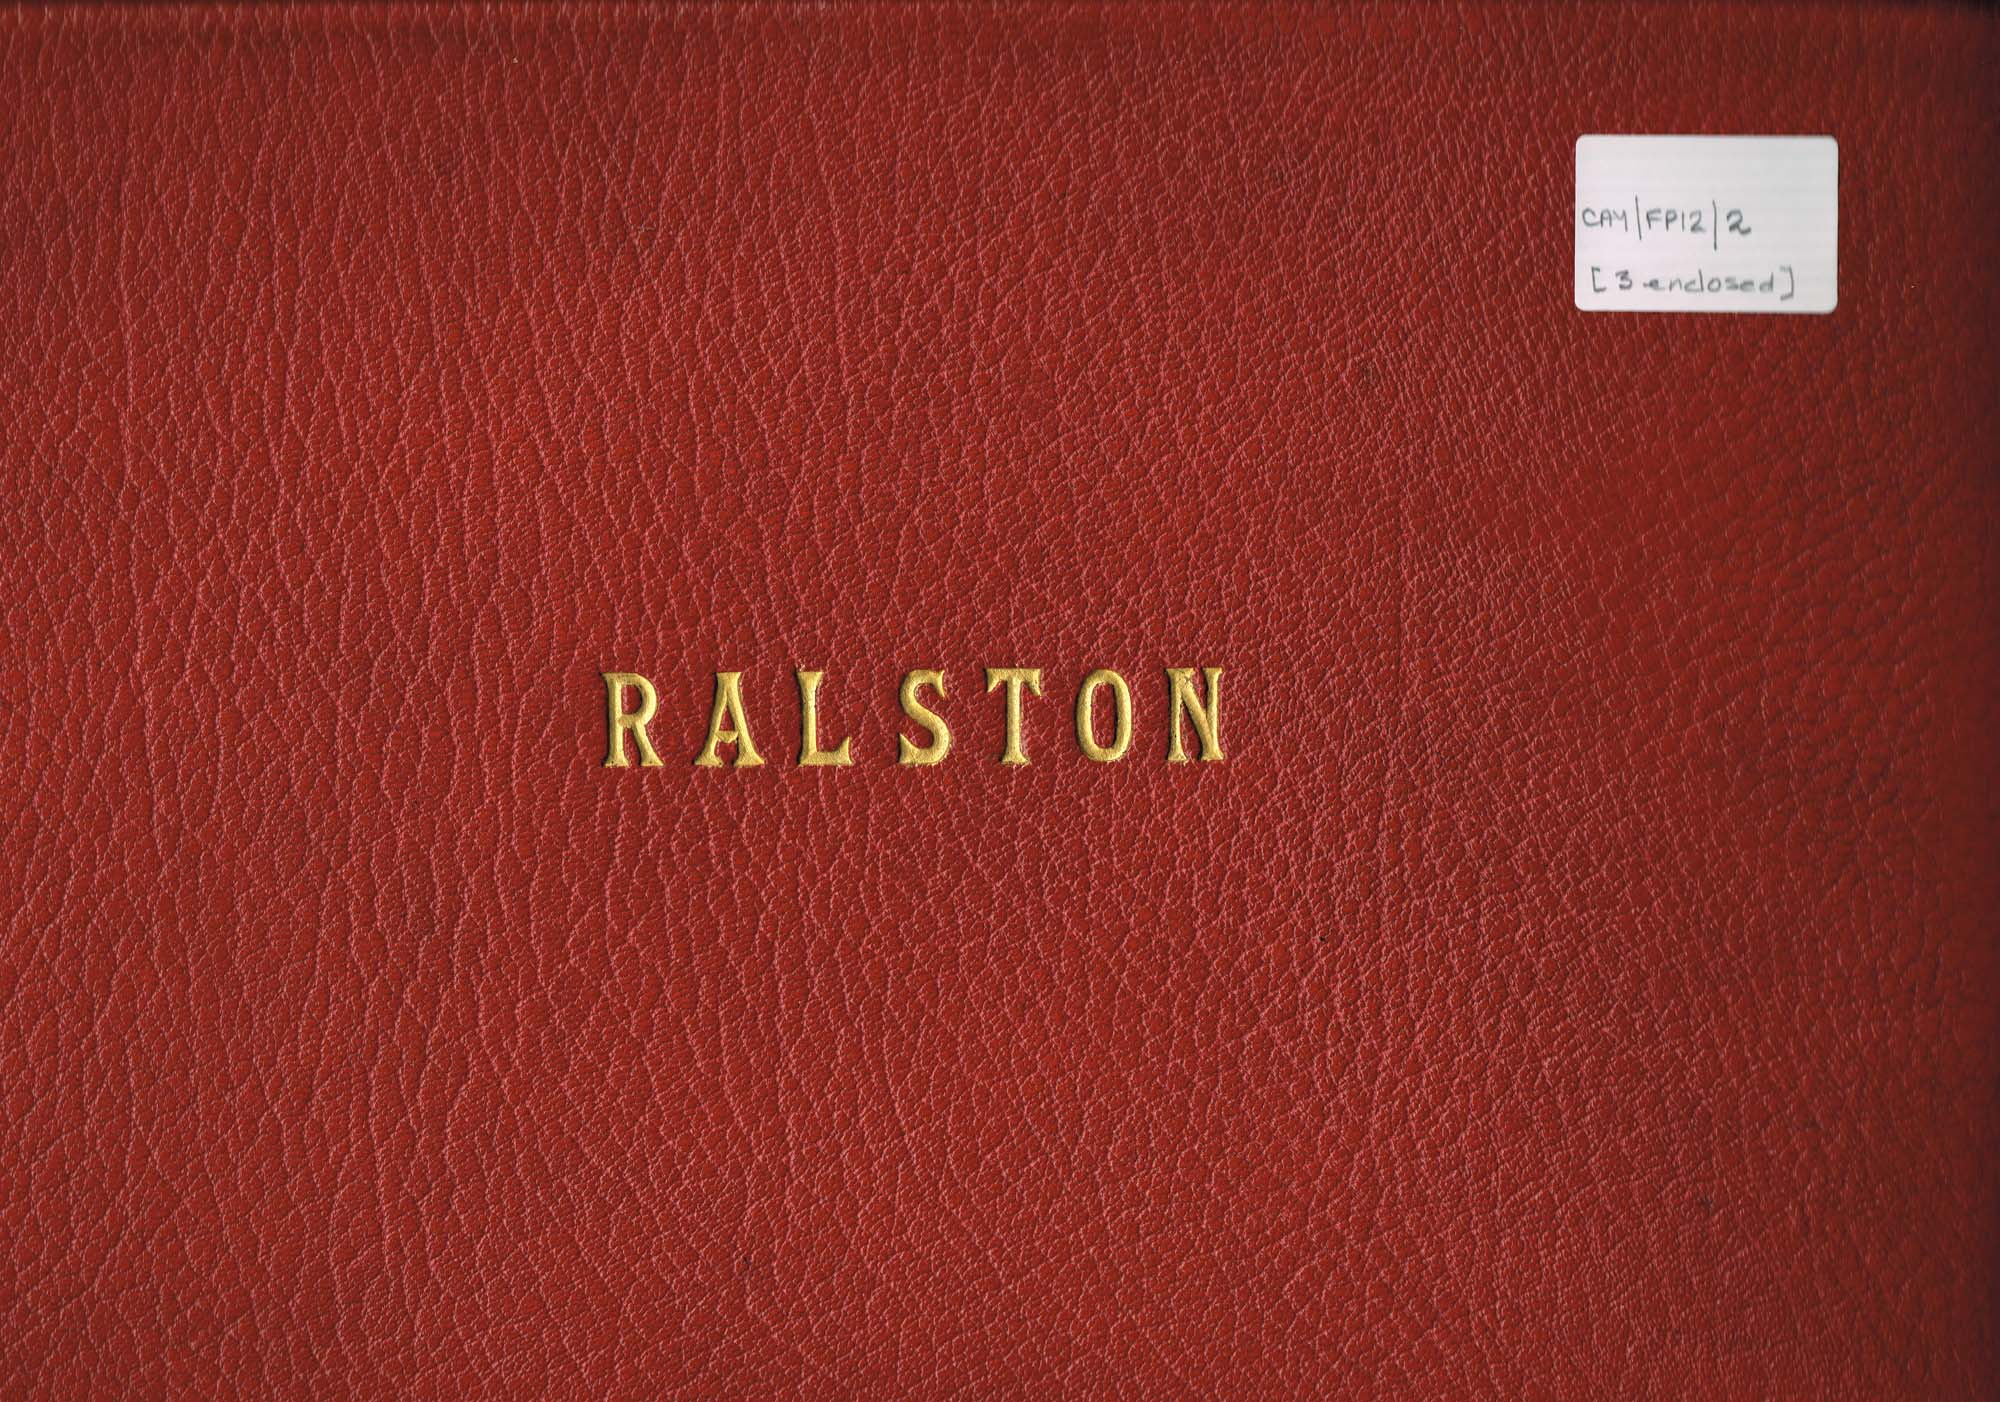 Colour photograph of album of prints of the interior of Ralston